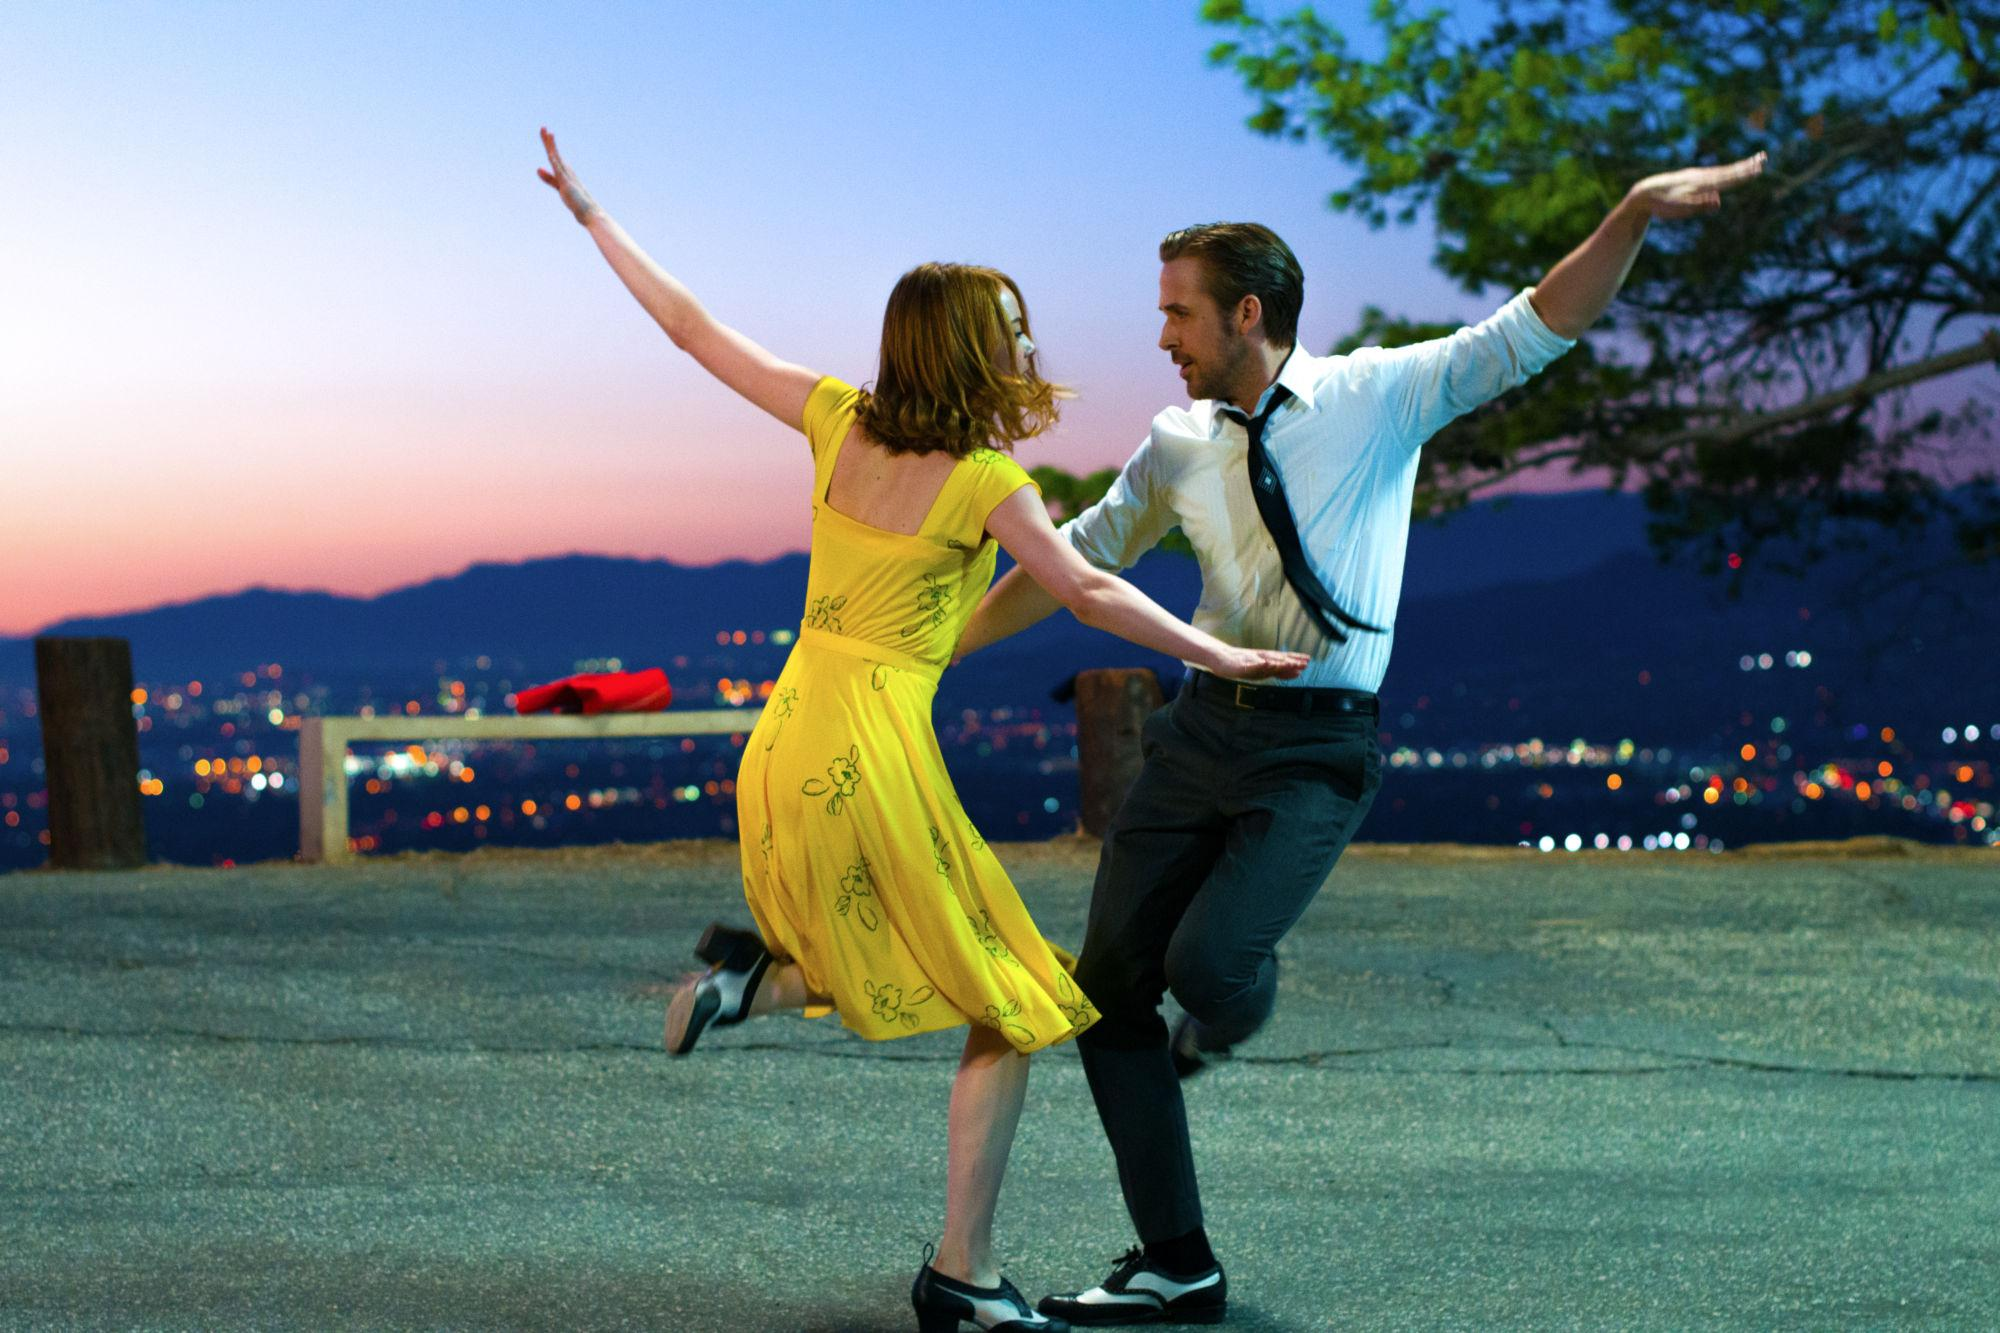 'La La Land' mixes fantasy and reality to create magical moments